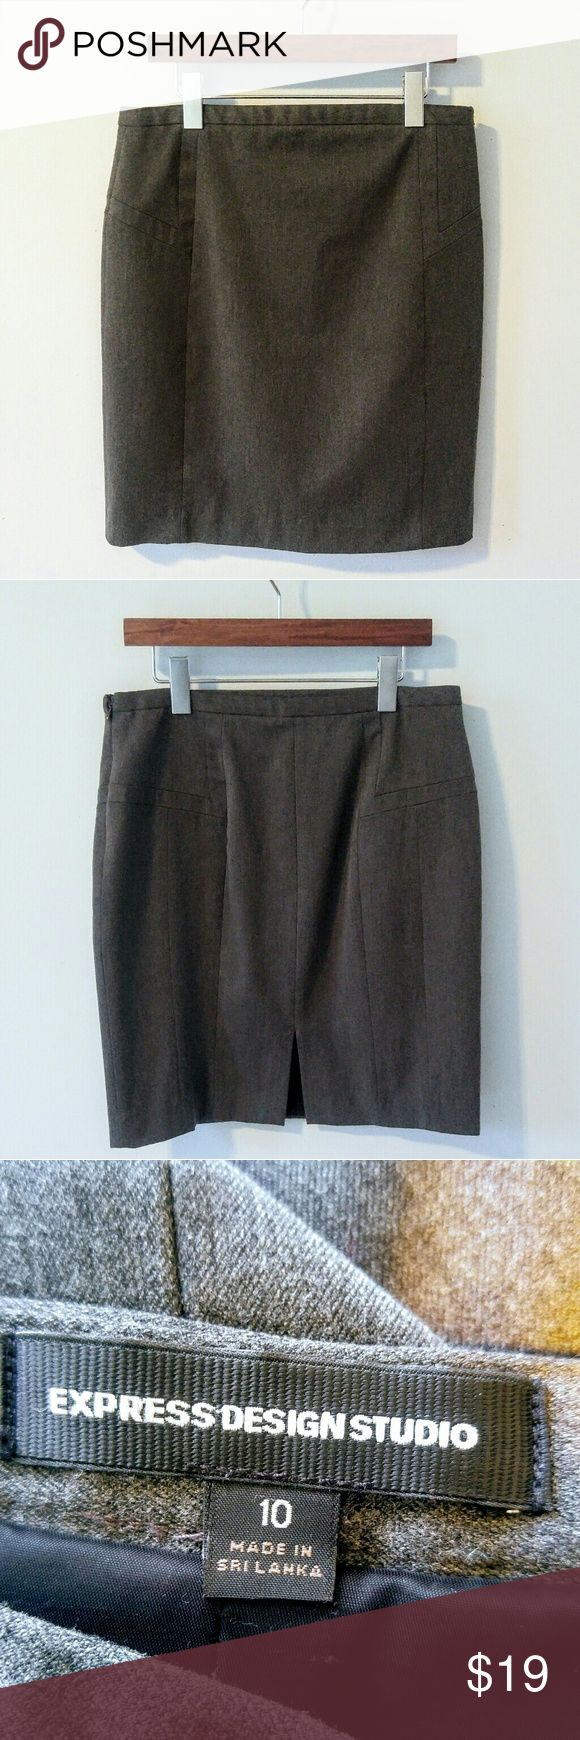 """Express Gray Pencil Skirt size 10 Gently pre-loved Express gray pencil skirt with flattering cut. No holes, stains or flaws.  Apprxomiate measurements: Waist 31"""" Length 21""""   Super fast same day or next business day shipping. Offers always welcomed. Thanks for looking! Express Skirts Pencil"""